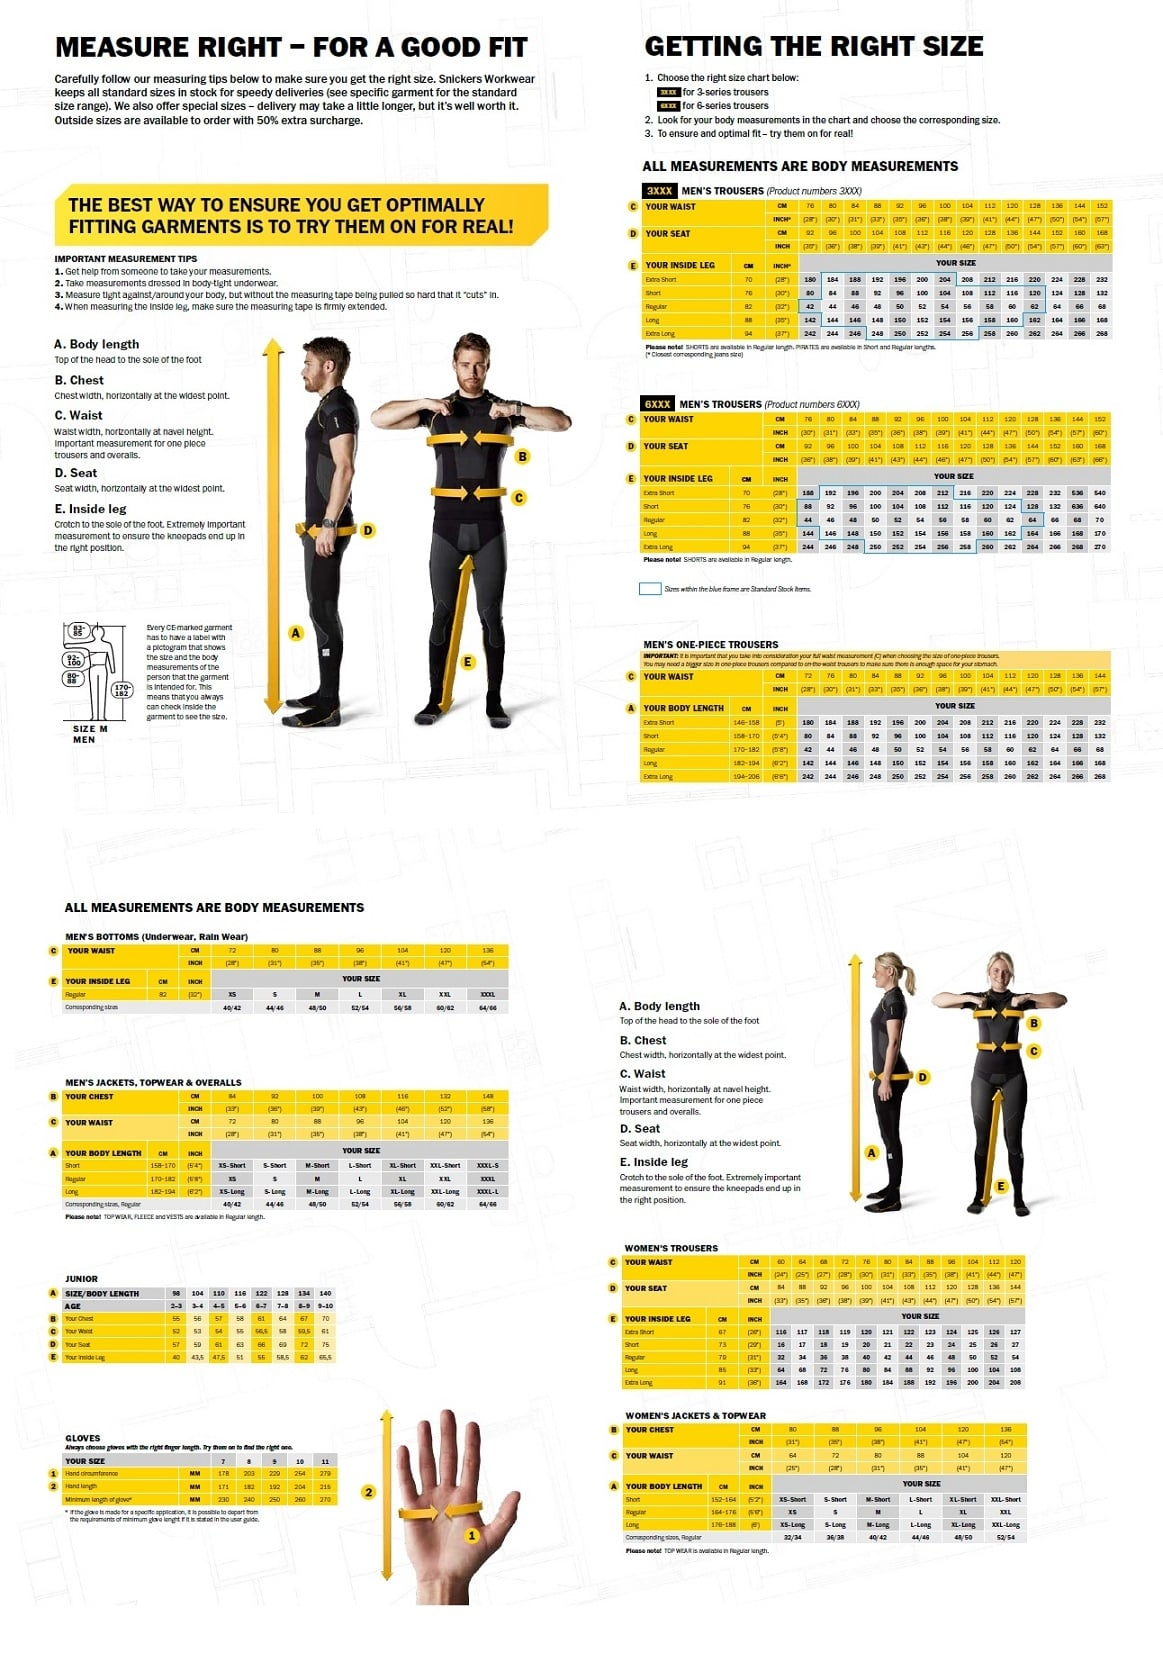 Size conversion chart there is a size chart for 3 series trousers and one for 6 series trousers the series is made clear by the model number eg 3212 nvjuhfo Choice Image